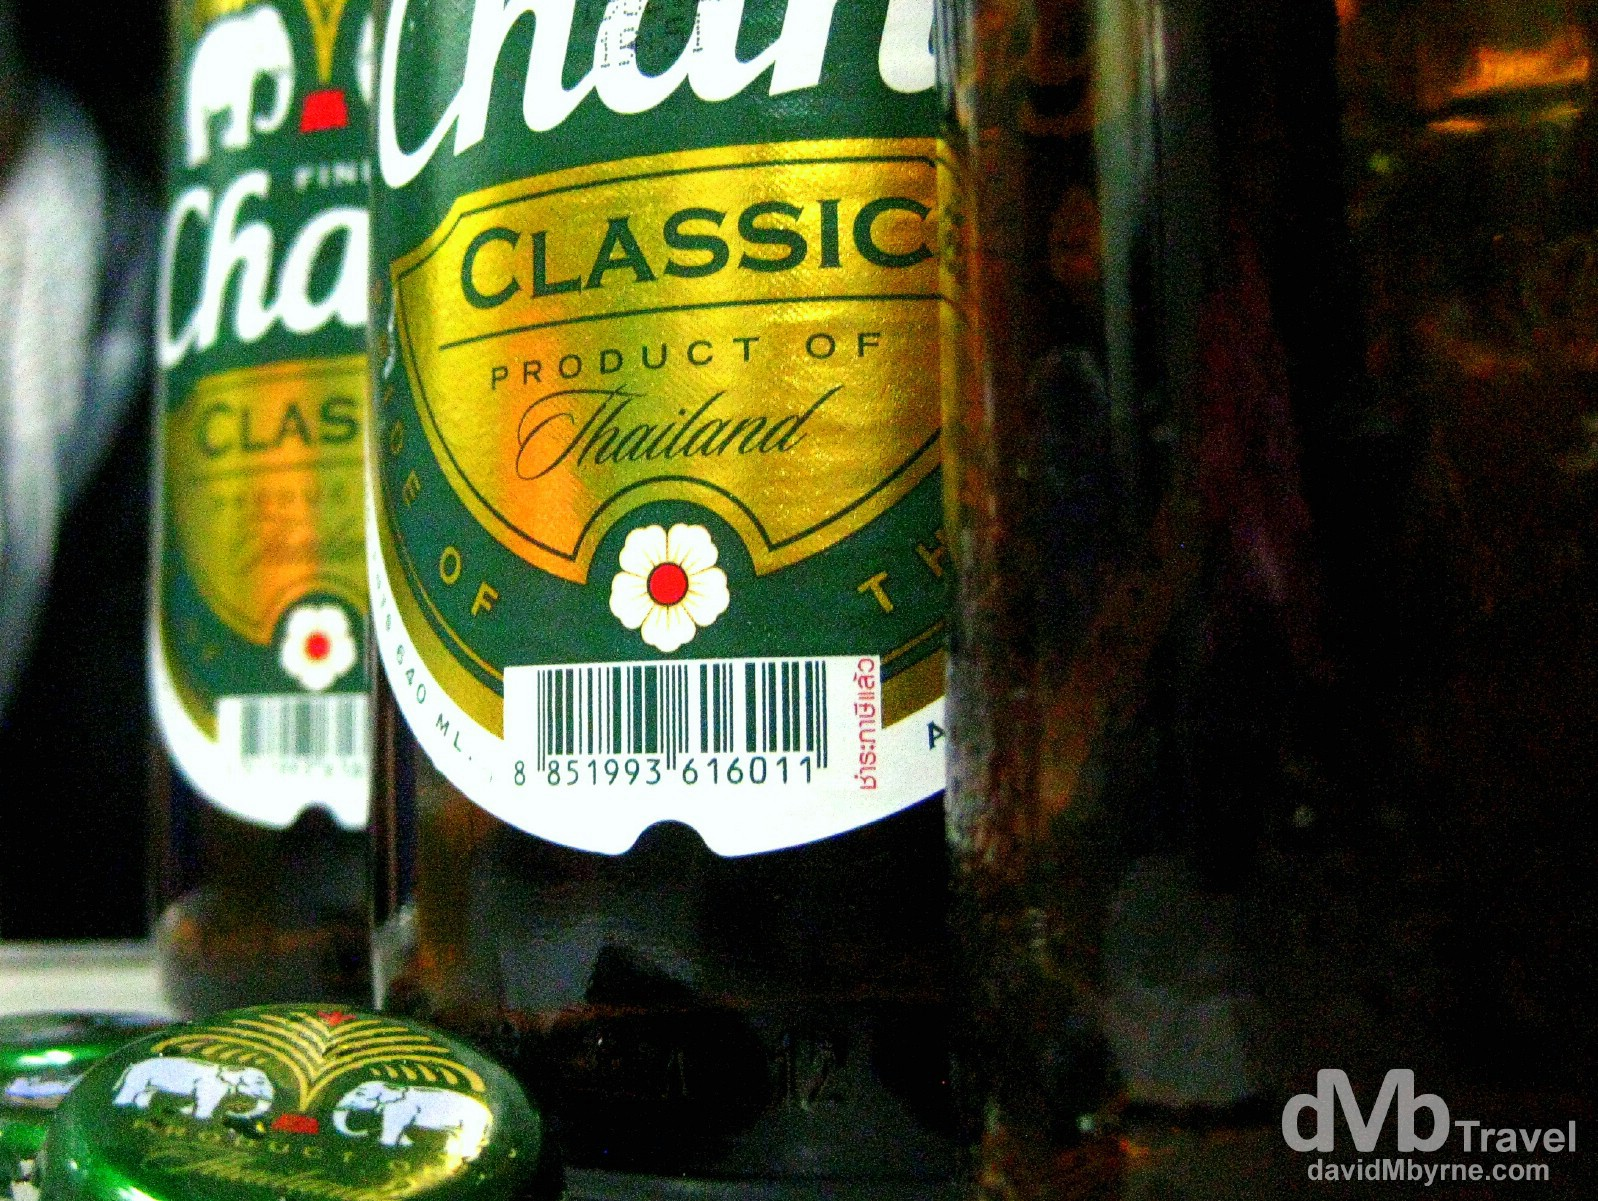 Chang beer, a pale lager & the flagship brand of ThaiBev, Thailand's largest and one of Southeast Asia's largest beverage companies, is the most popular beer in Thailand. Chang (Thai: ????) is the Thai word for elephant, an animal with cultural and historical significance in the country, & the beer's logo features two elephants facing each other. It's a strong brew, at least when drinking from the 660ml bottles found in Thailand; it's brewed to 'only' 5% abv for export whereas the local brew is a quick & dangerous 6.4%. I took this (grainy) picture with my point-&-shoot on the train en route from Bangkok north to Chiang Mai. There was more than one bottle consumed and thus the 16-hour overnight journey seemed to fly by.